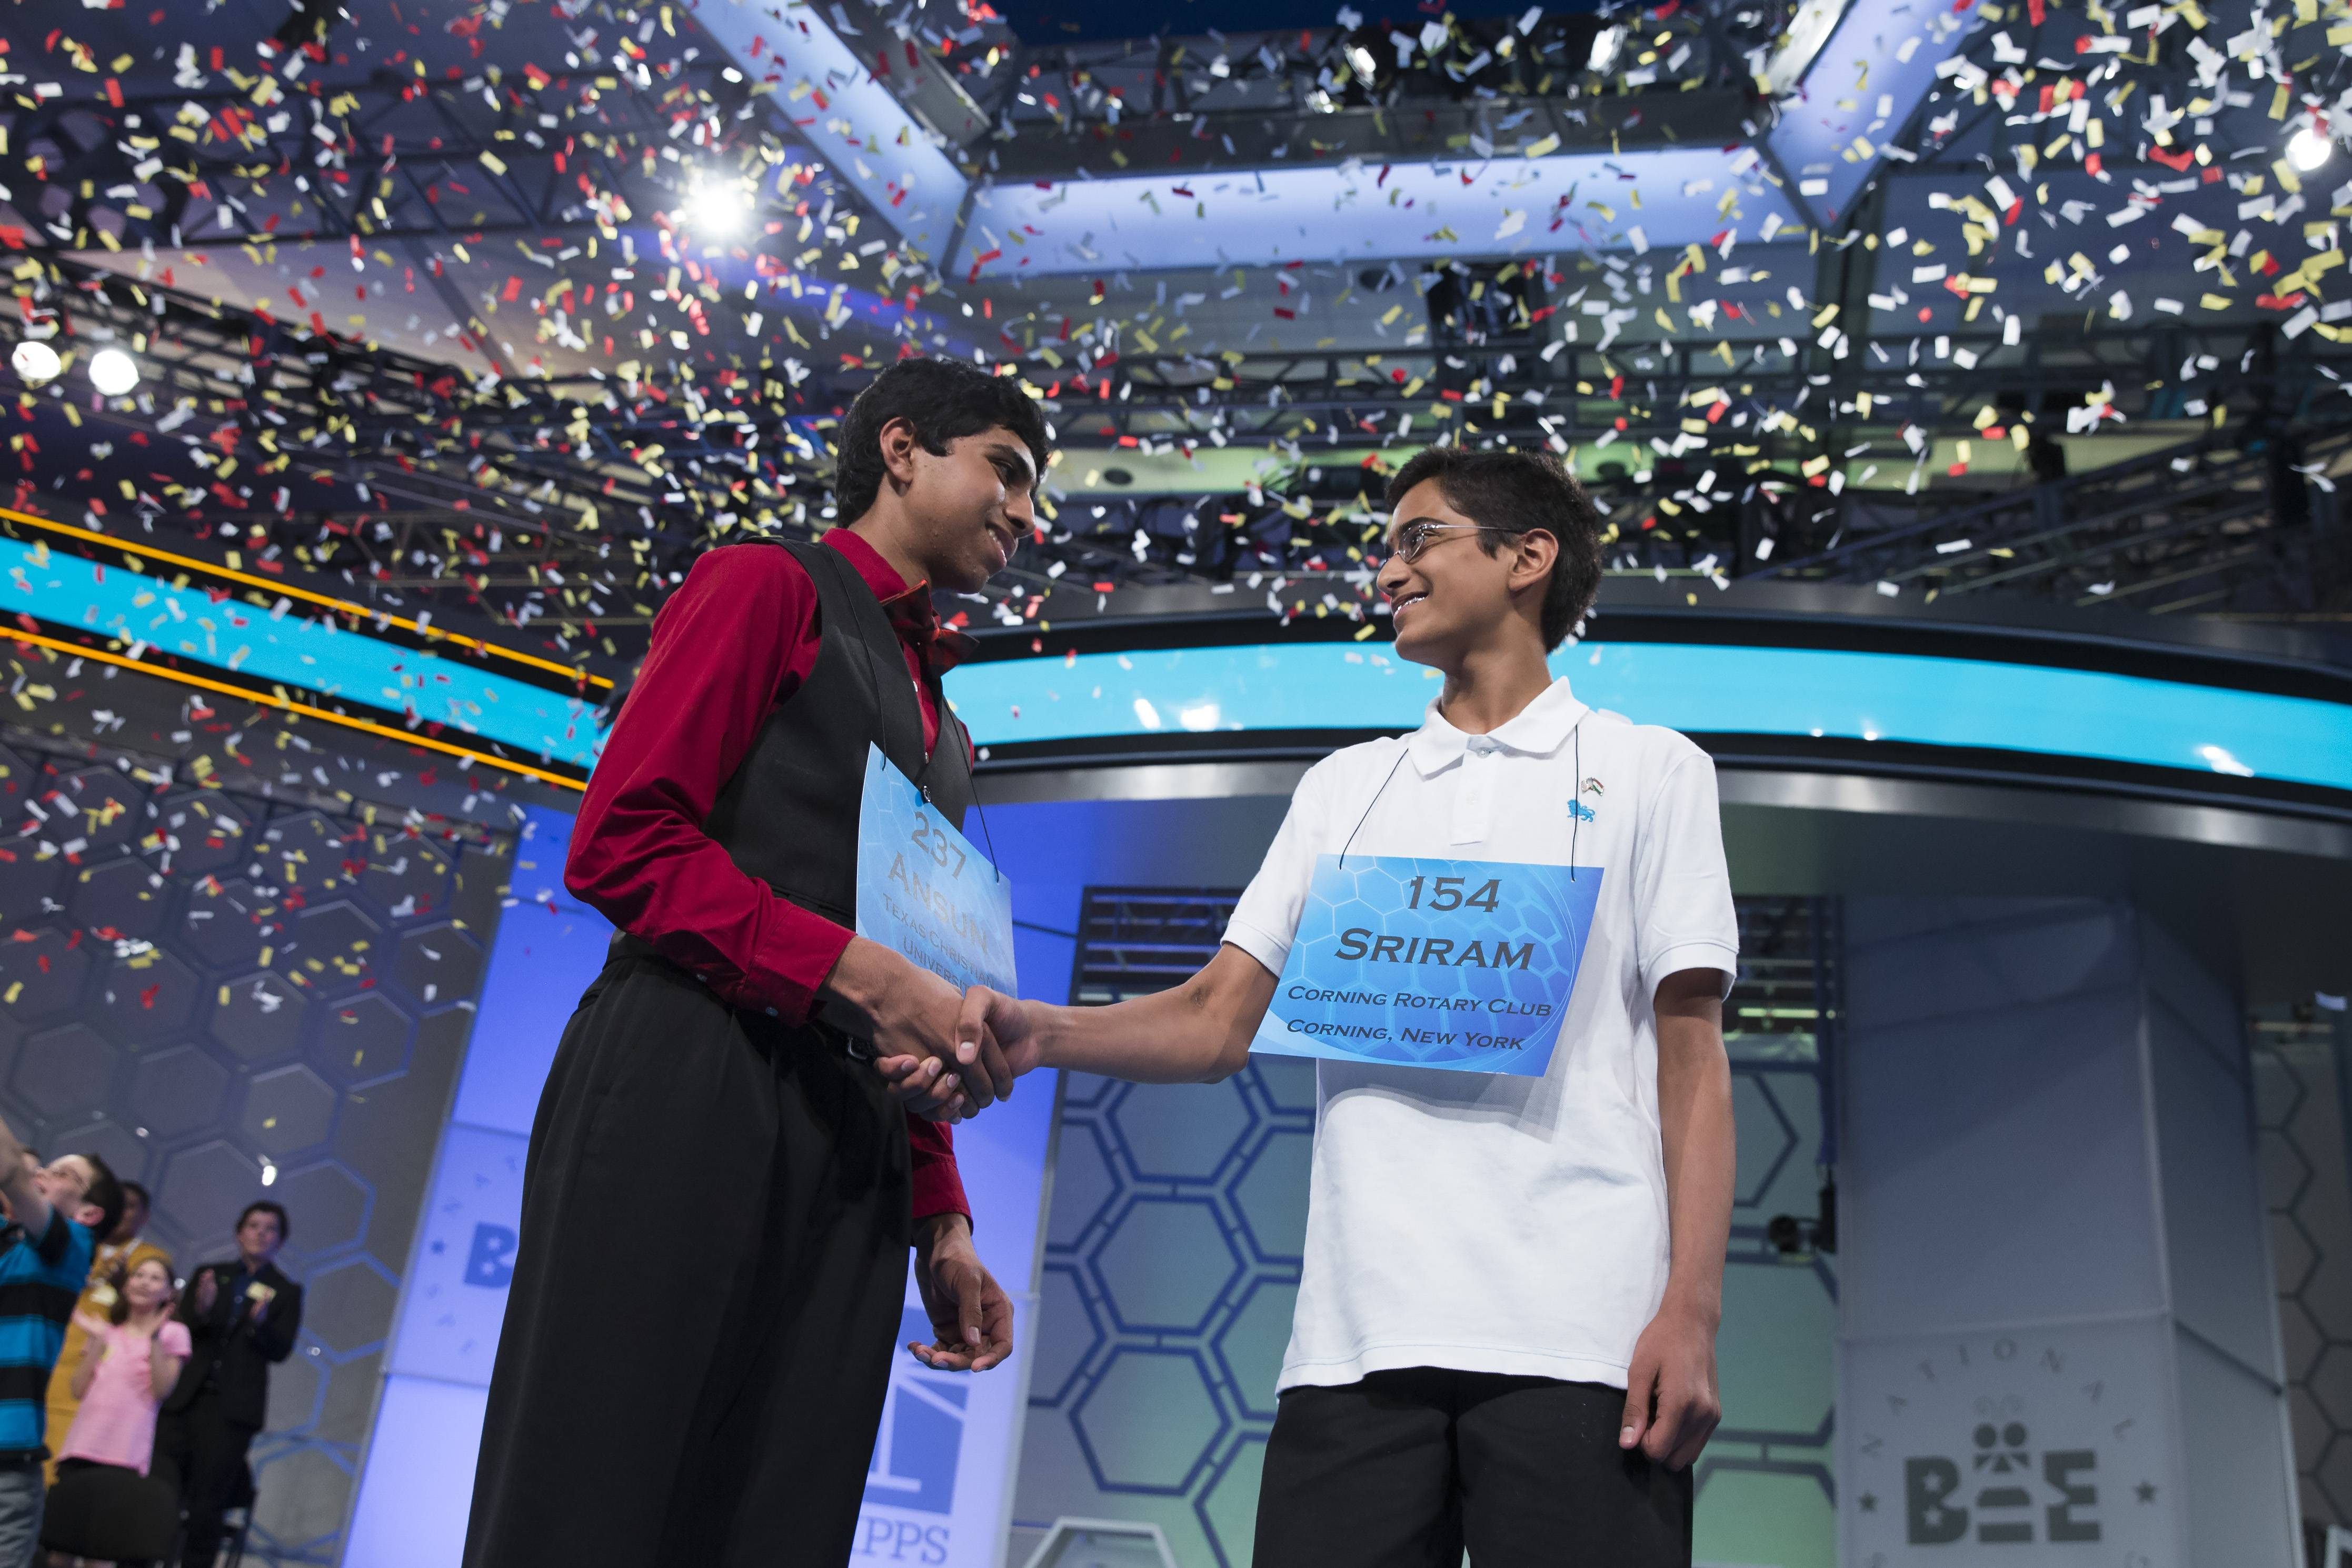 Ansun Sujoe, 13, of Fort Worth, Texas, left, and Sriram Hathwar, 14, of Painted Post, N.Y., shake hands after being named co-champions of the National Spelling Bee on Thursday.